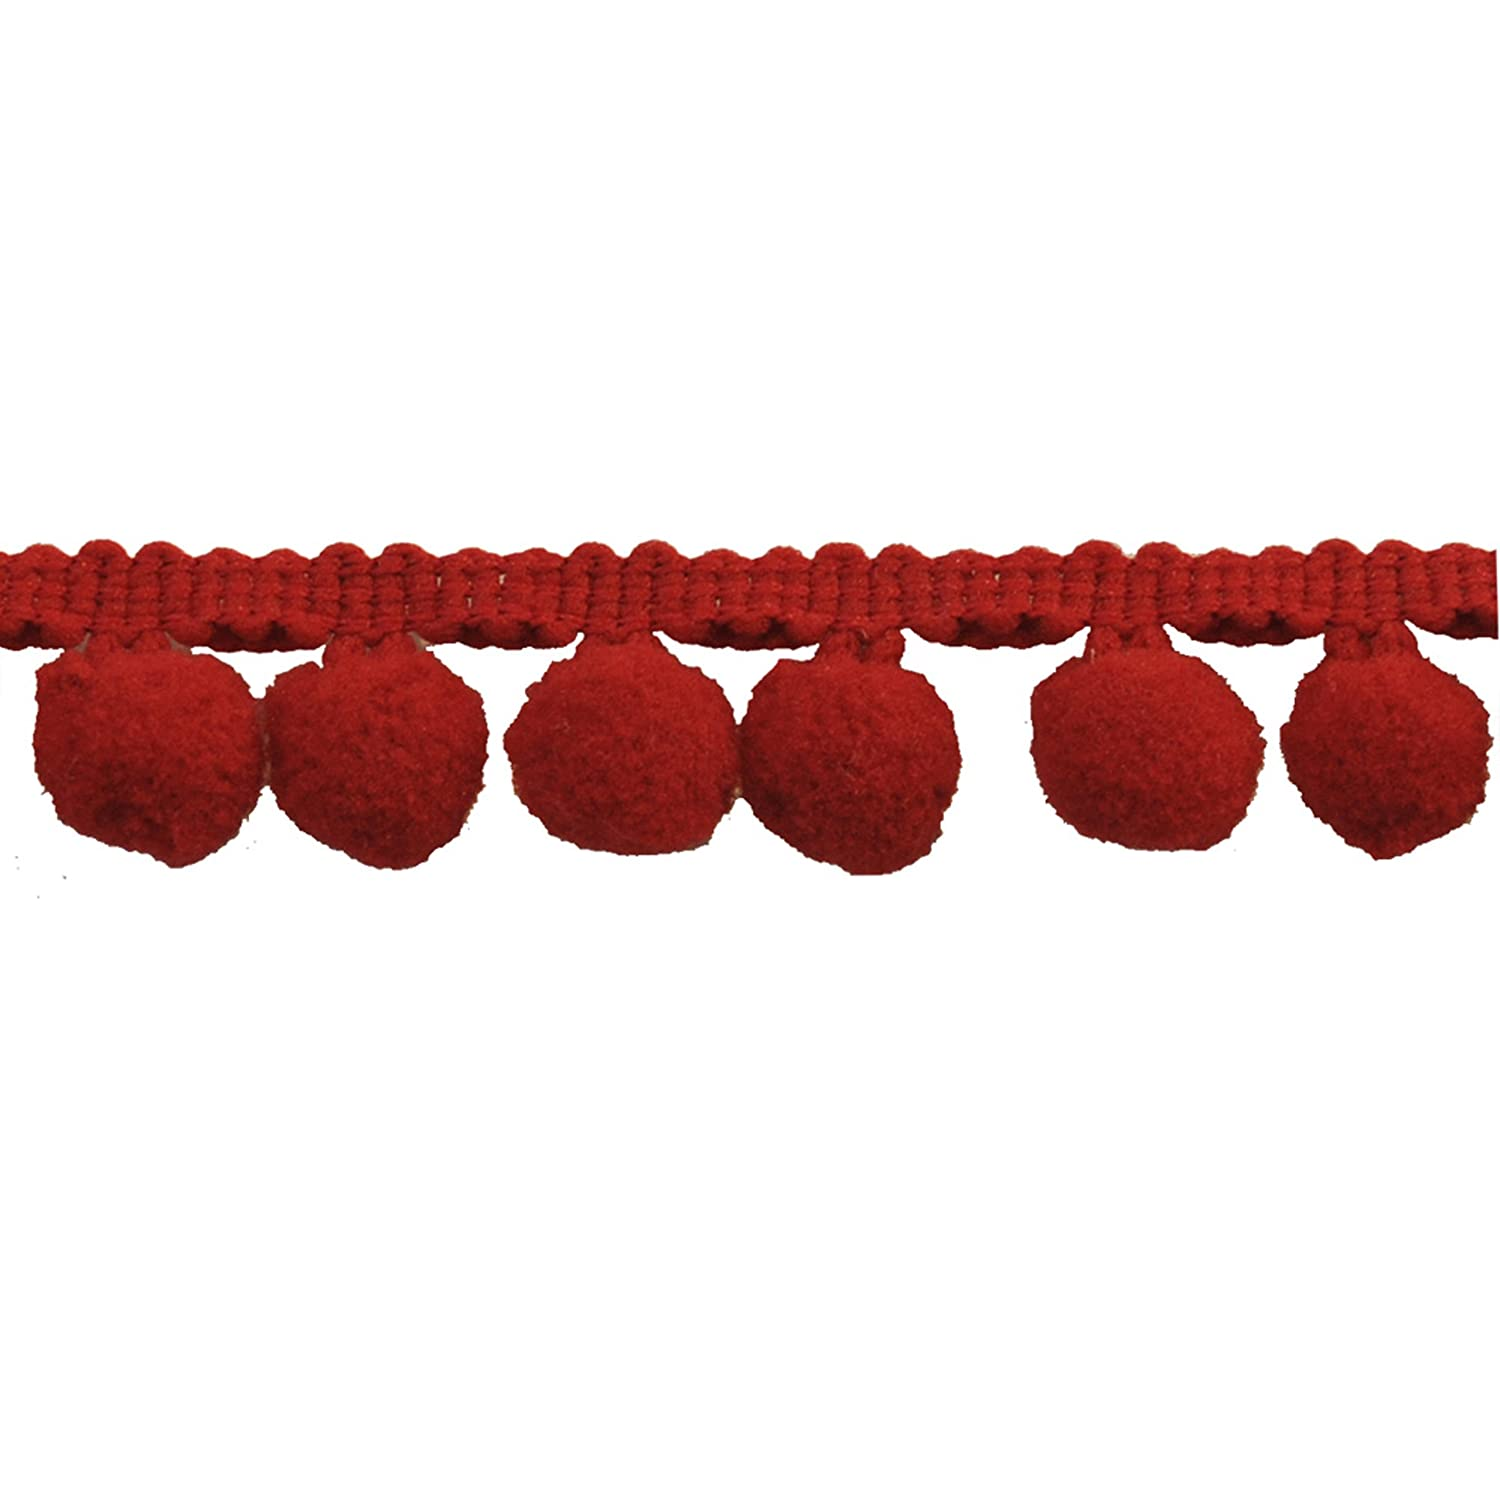 Pompom Fringe 1-Inch Polyester Fringe Rolls for Arts and Crafts, 10-Yard, red Belagio Enterprises BP-101 - 22 RED